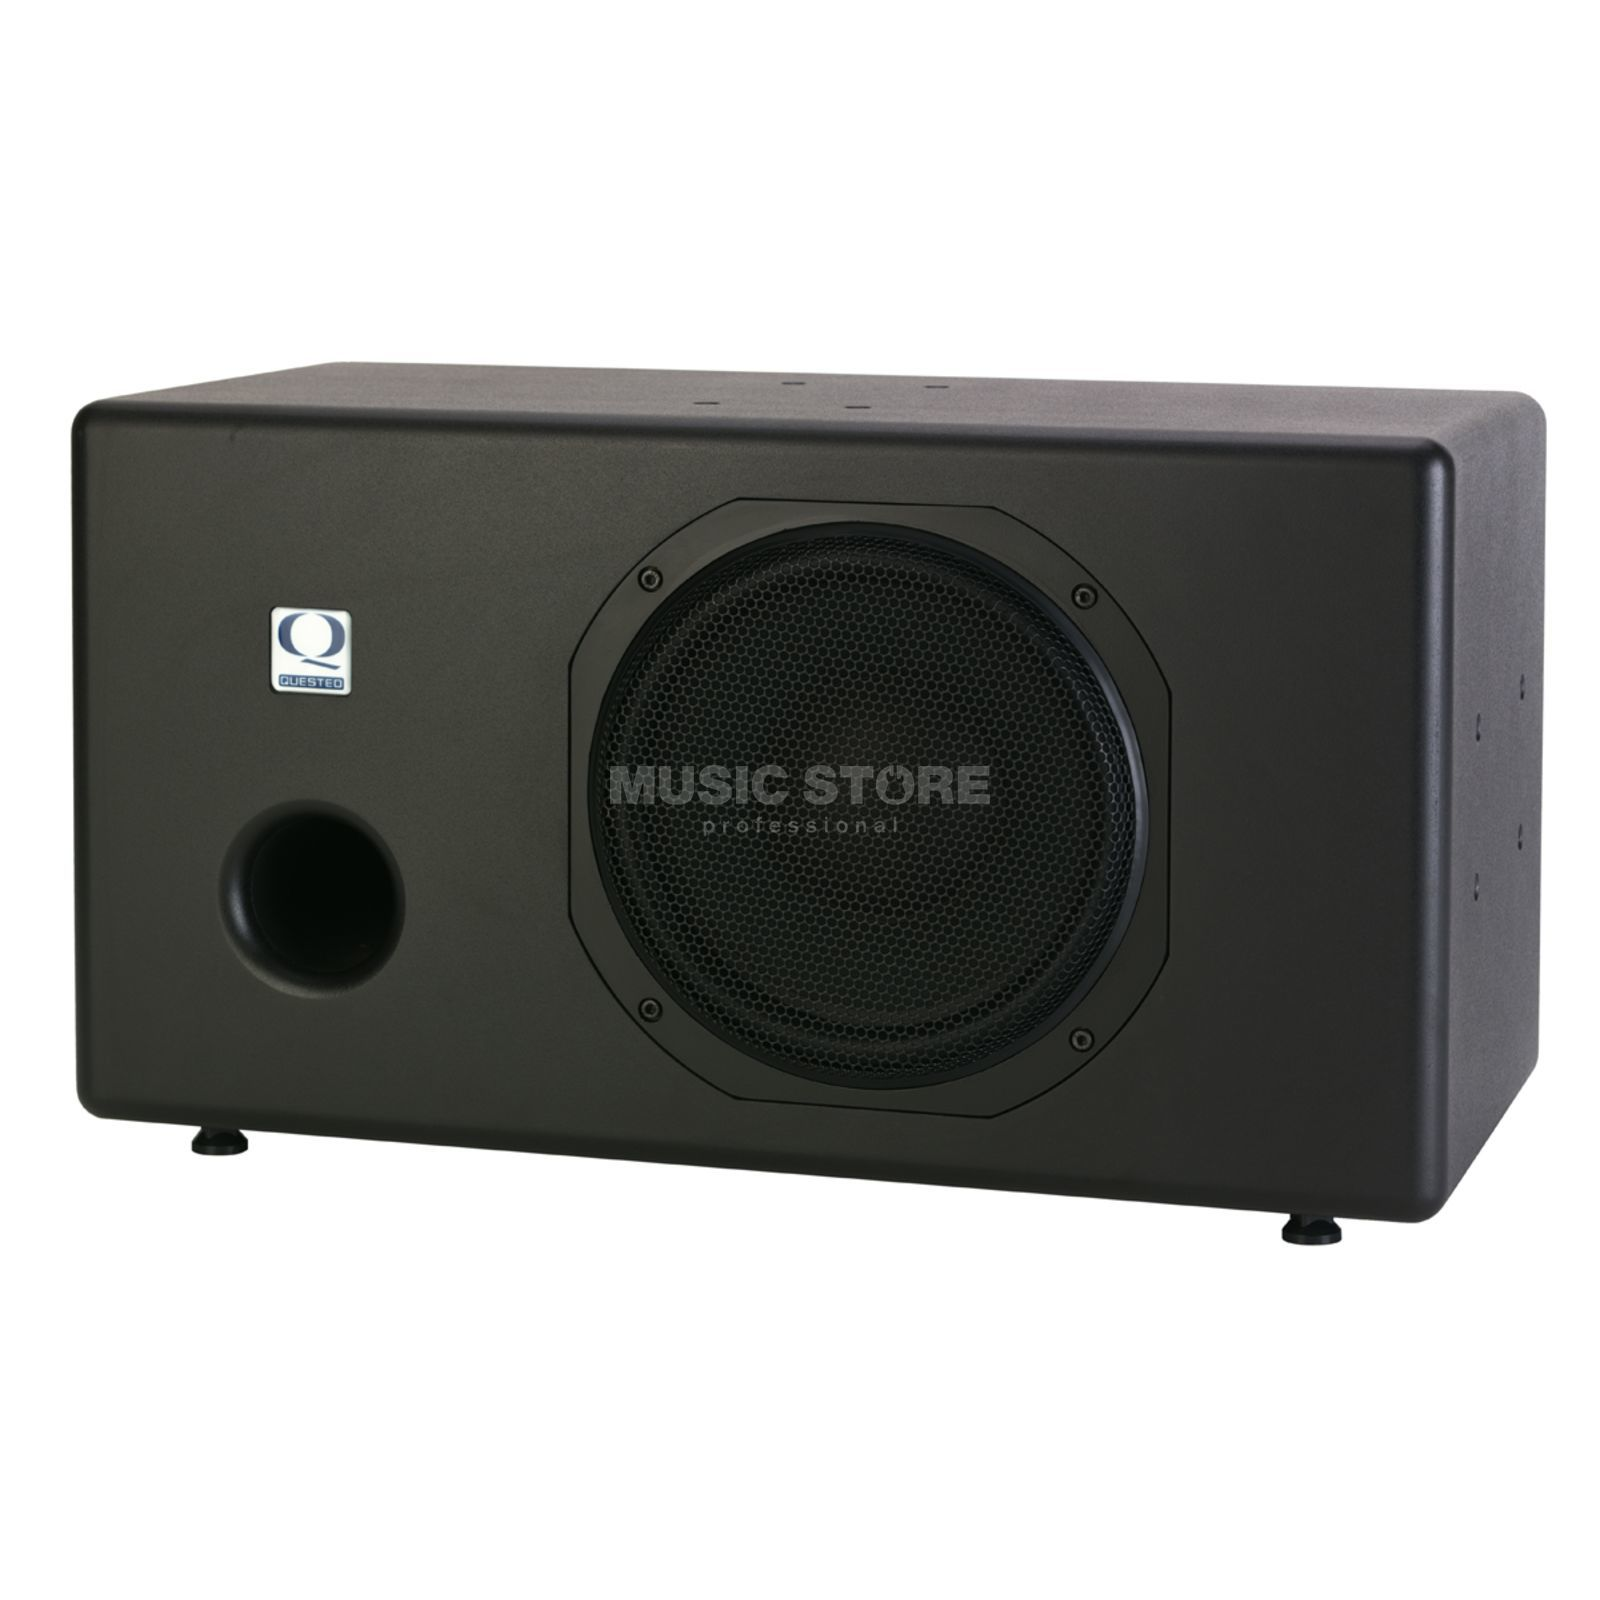 Quested SB10R Active Sub-Woofer & 1U Stereo Powered Controller Produktbillede